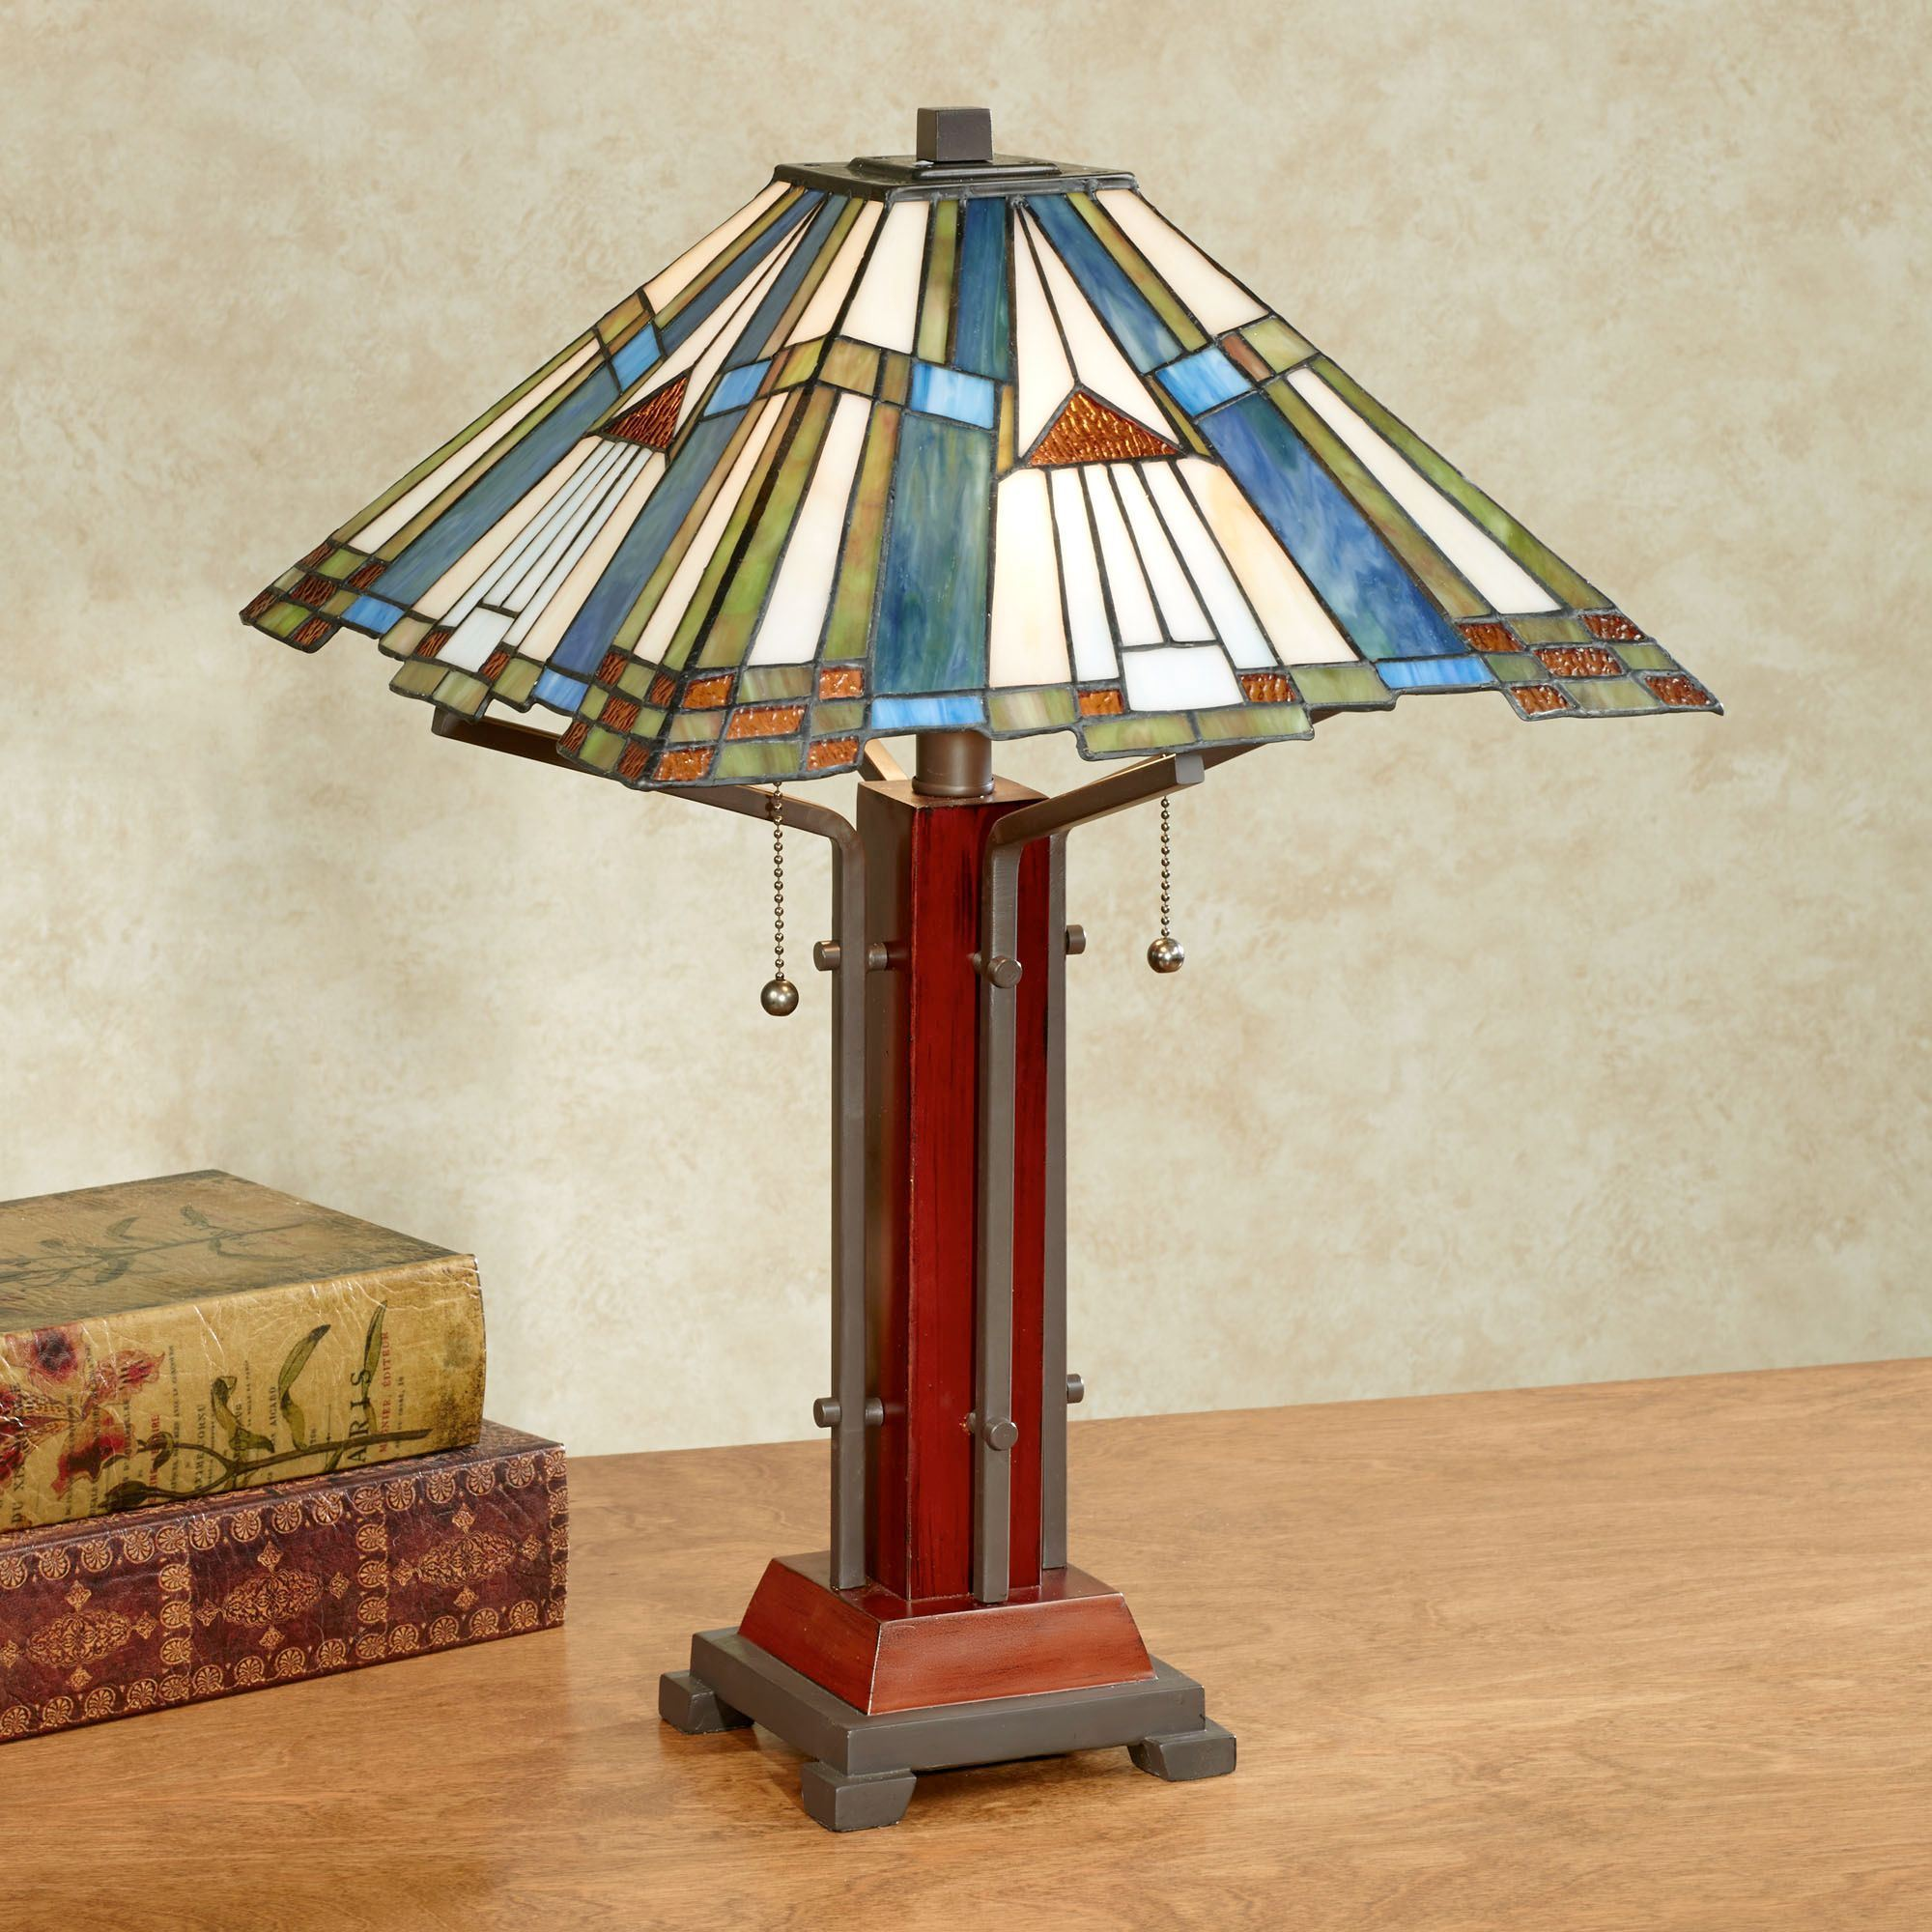 table italia styling style lamps d blue white serena double contemporary stained antique victorian chain pull mosaic glass ditalia vintage tiffany lamp dp